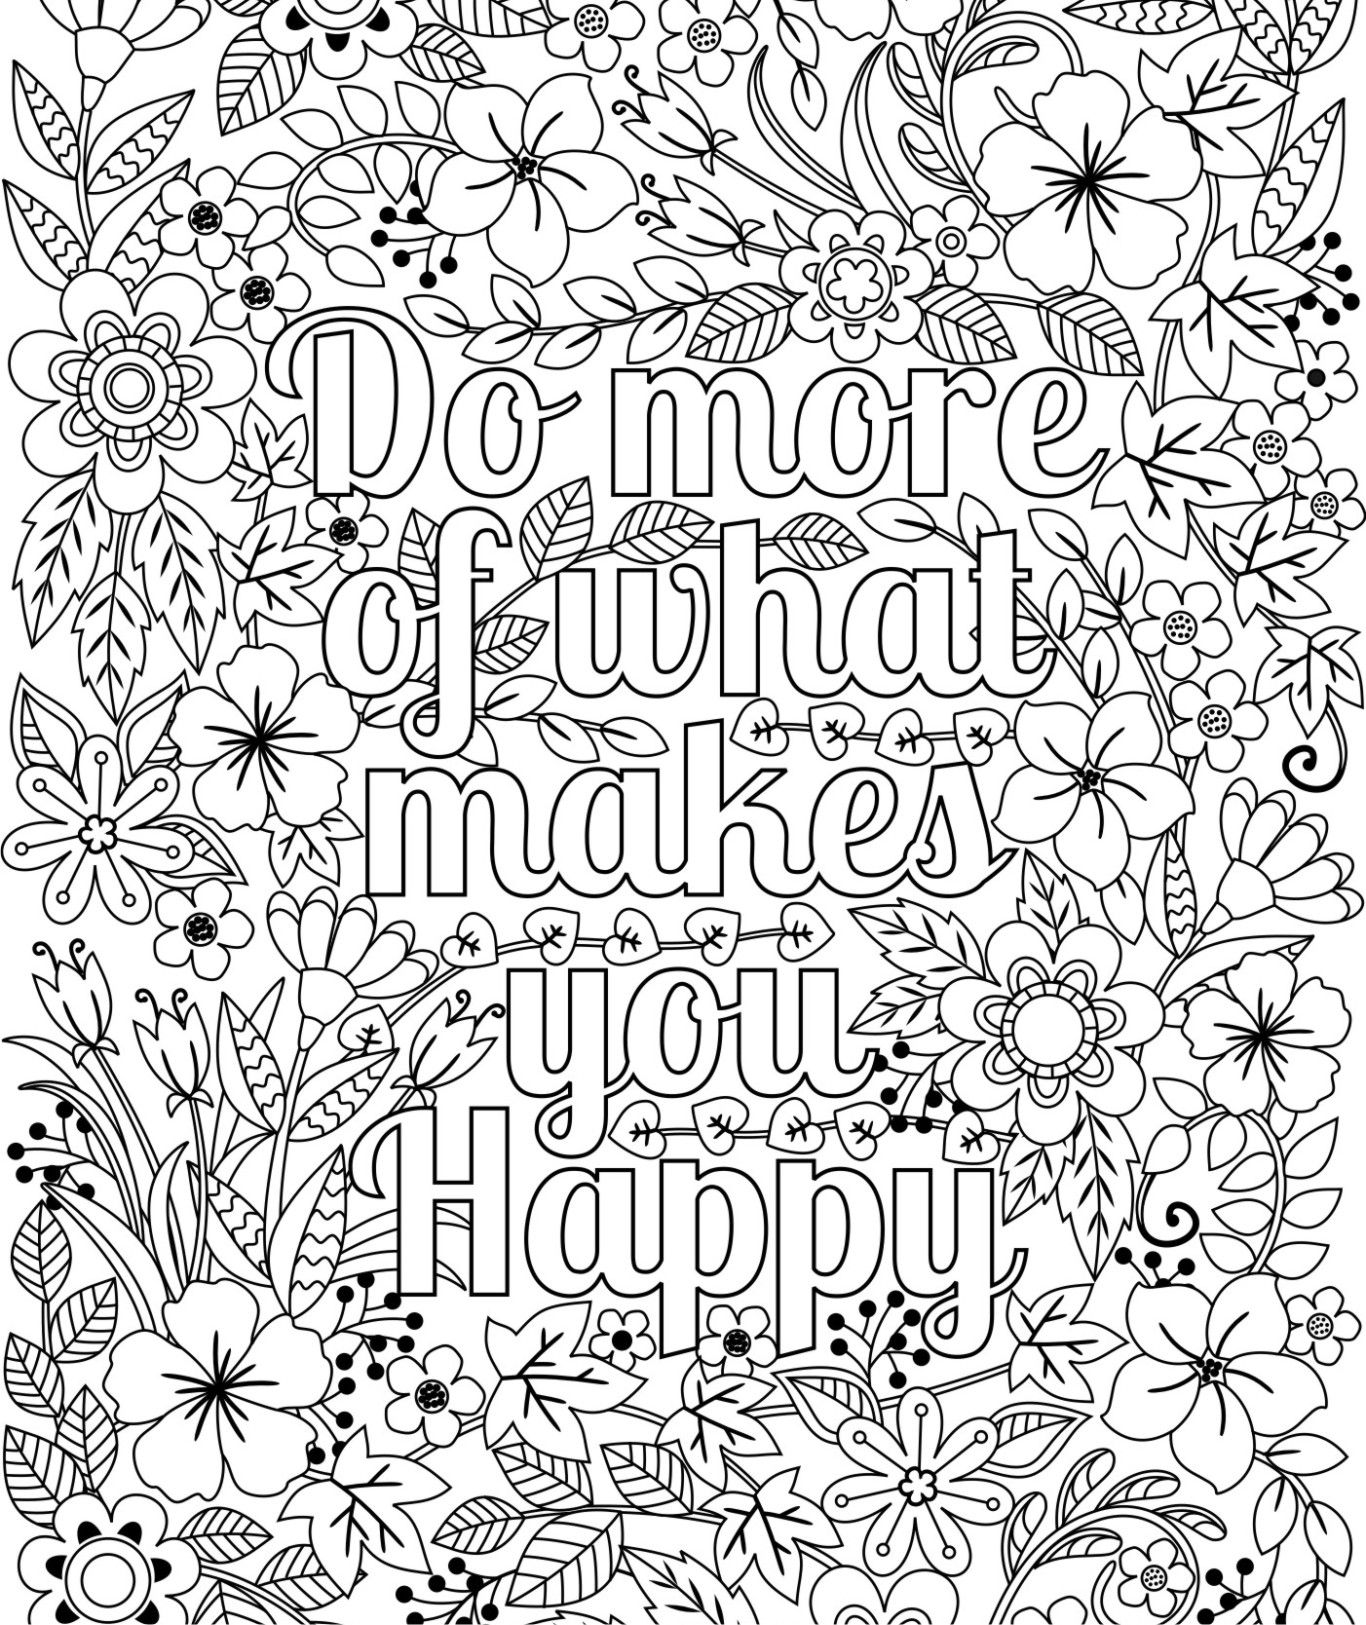 Do More of What Makes You Happy - Coloring Page for Kids ...Detailed Mandala Coloring Pages For Adults